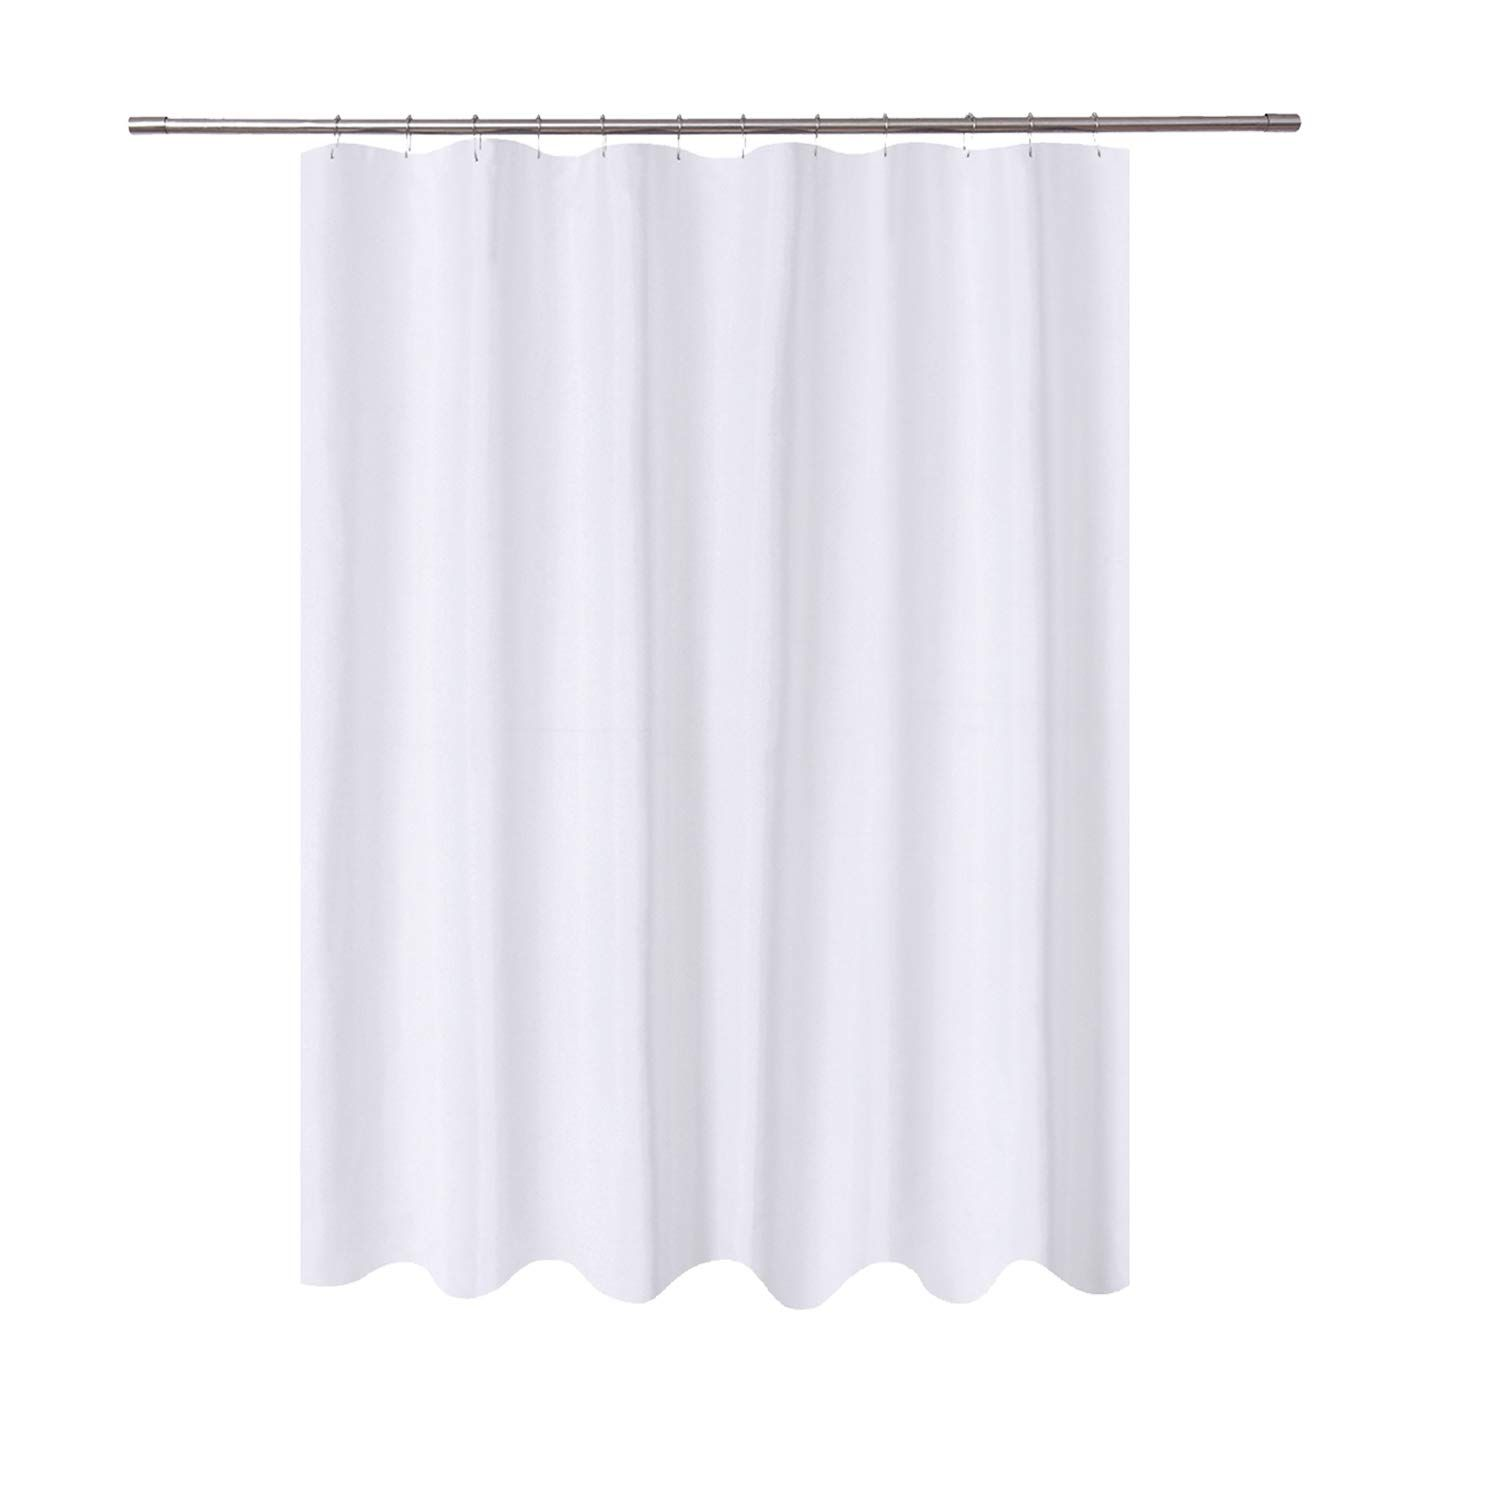 N Amp Y Home Long Fabric Shower Curtain Liner 72 X 78 Inches